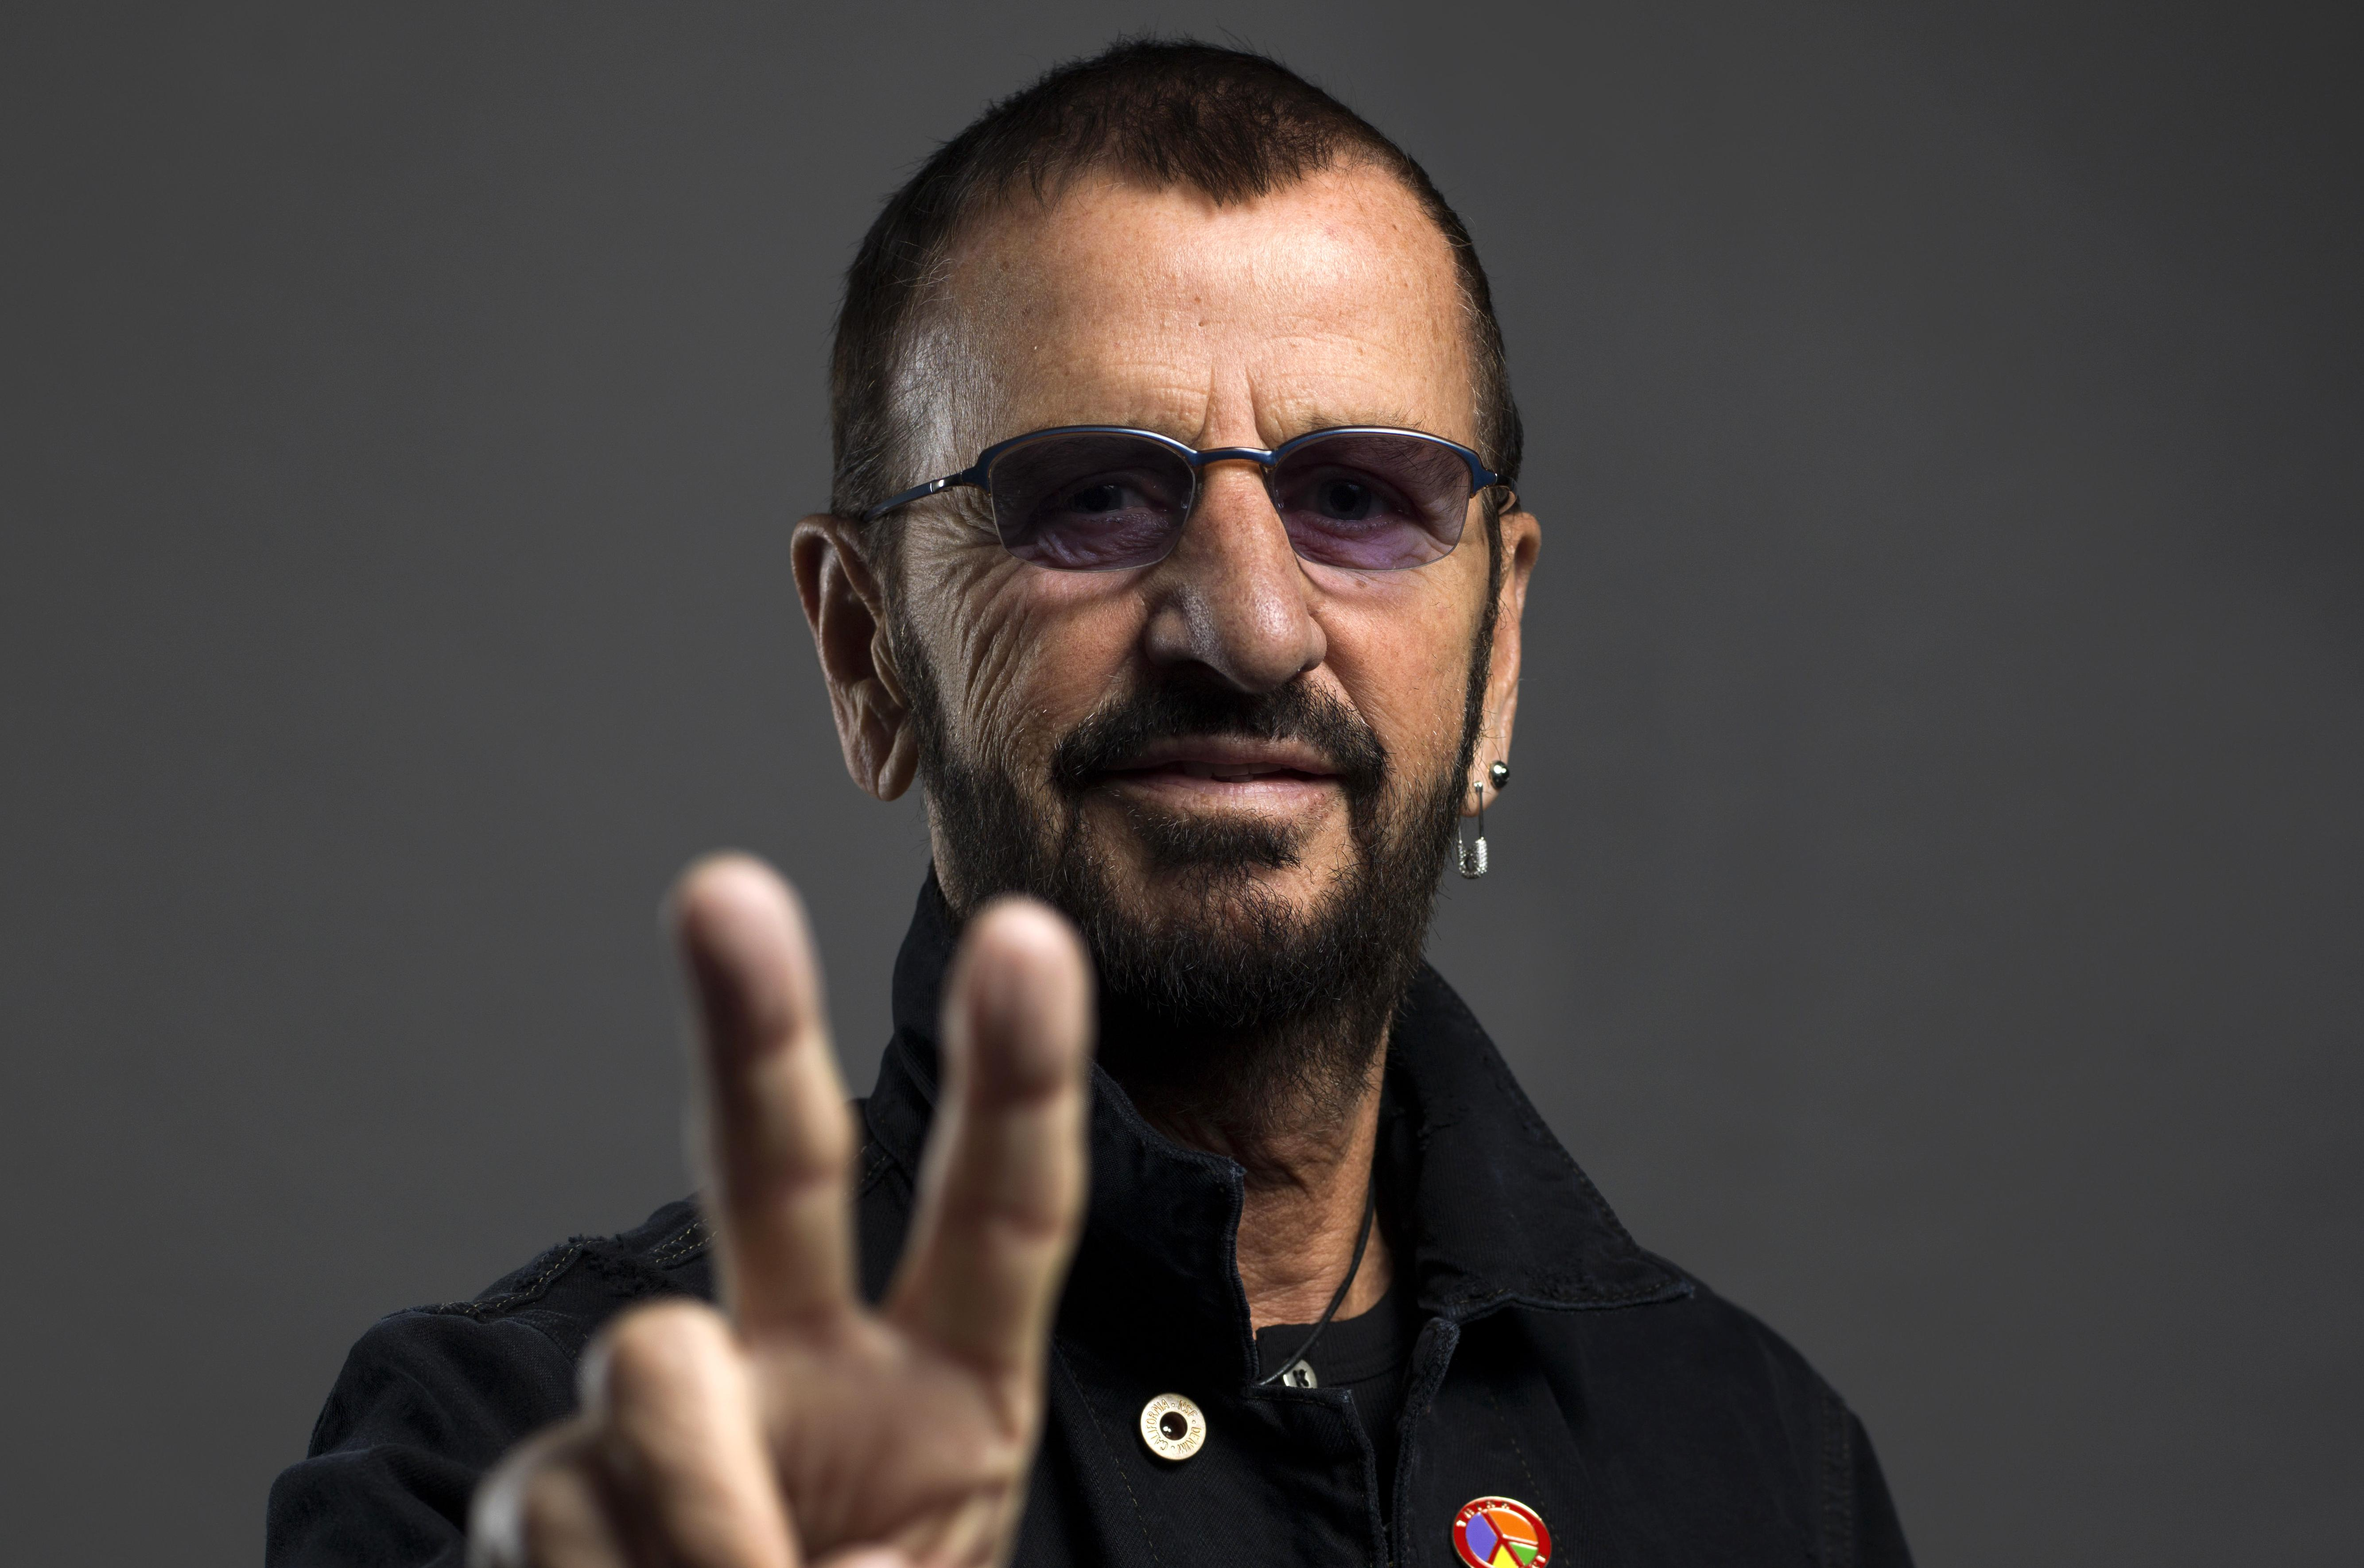 Ringo Starr Poses For A Portrait On In June New York Is